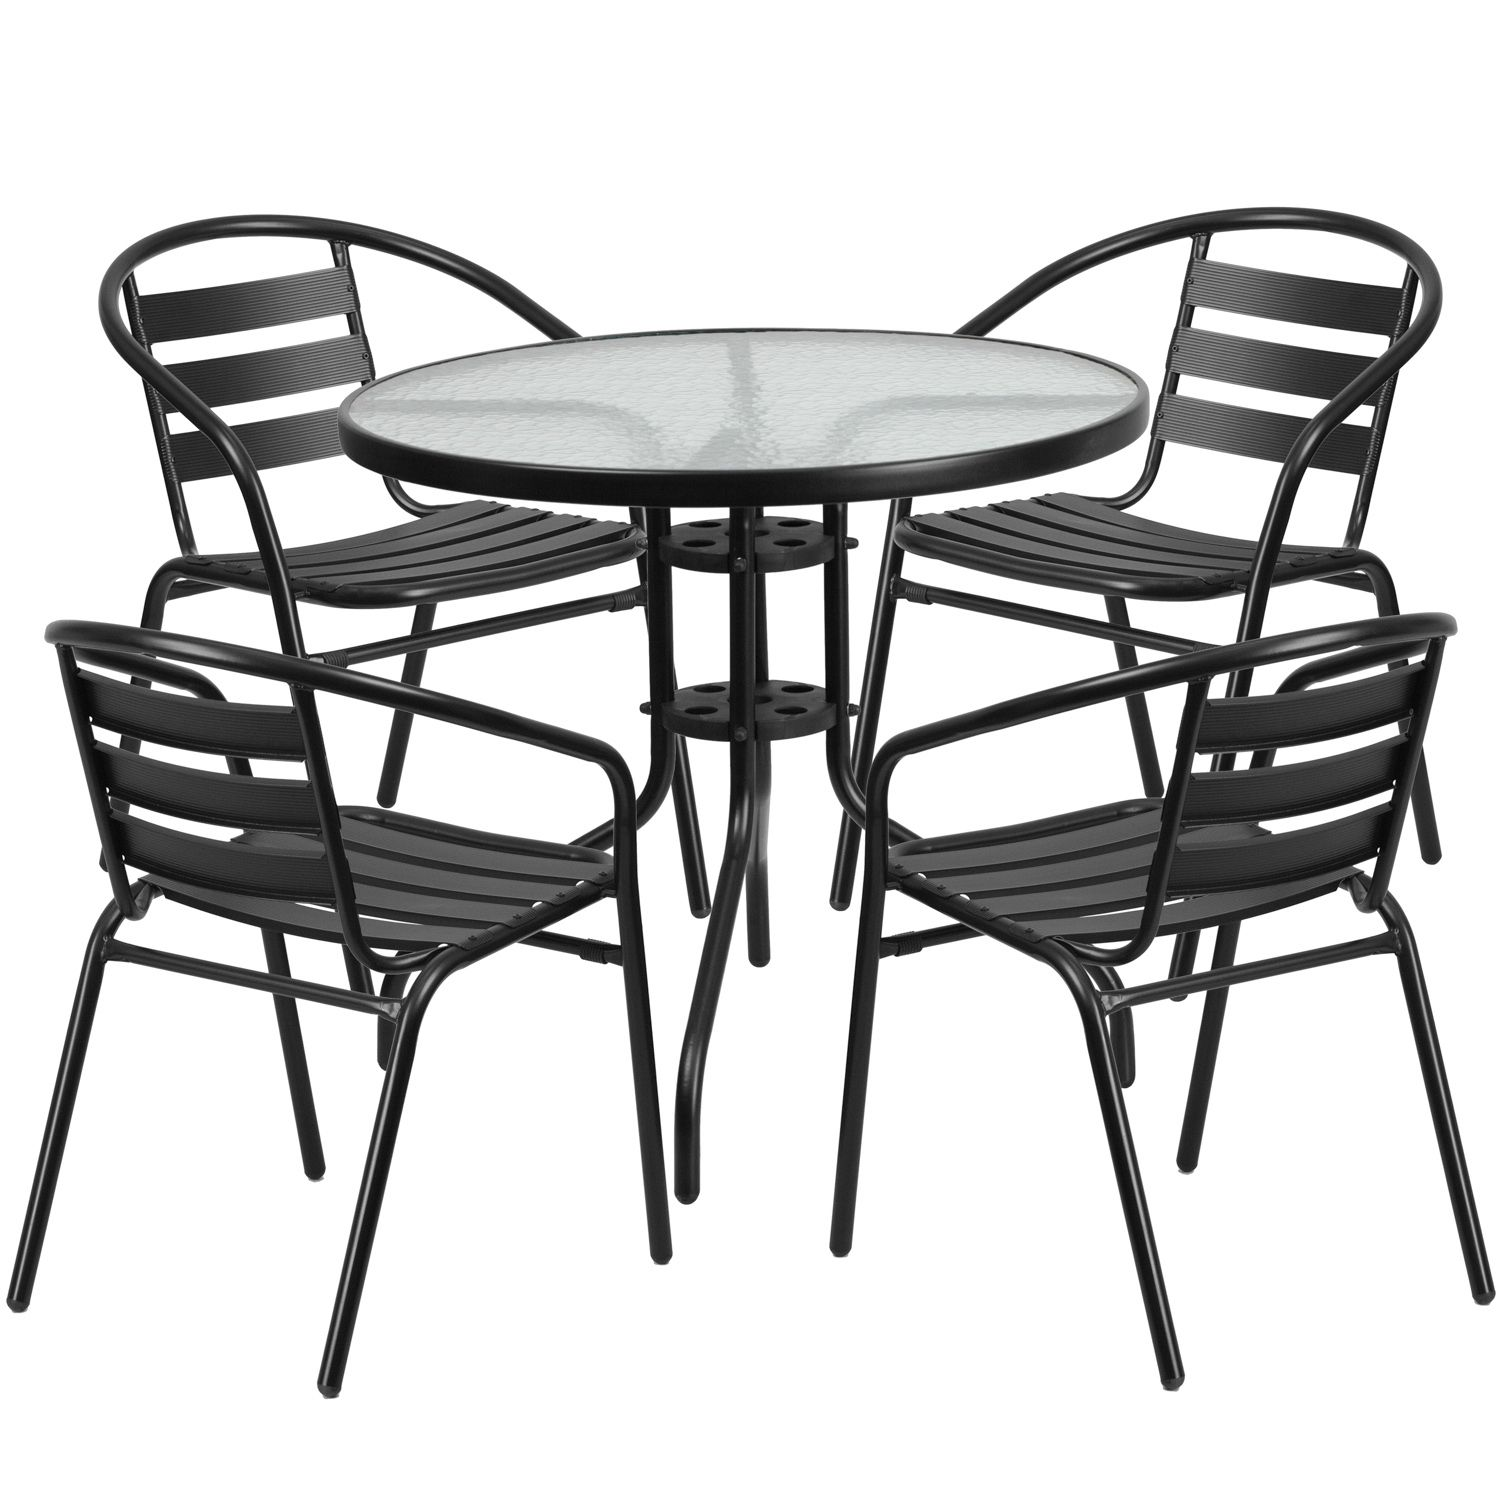 32 round glass patio table 4 arm chairs